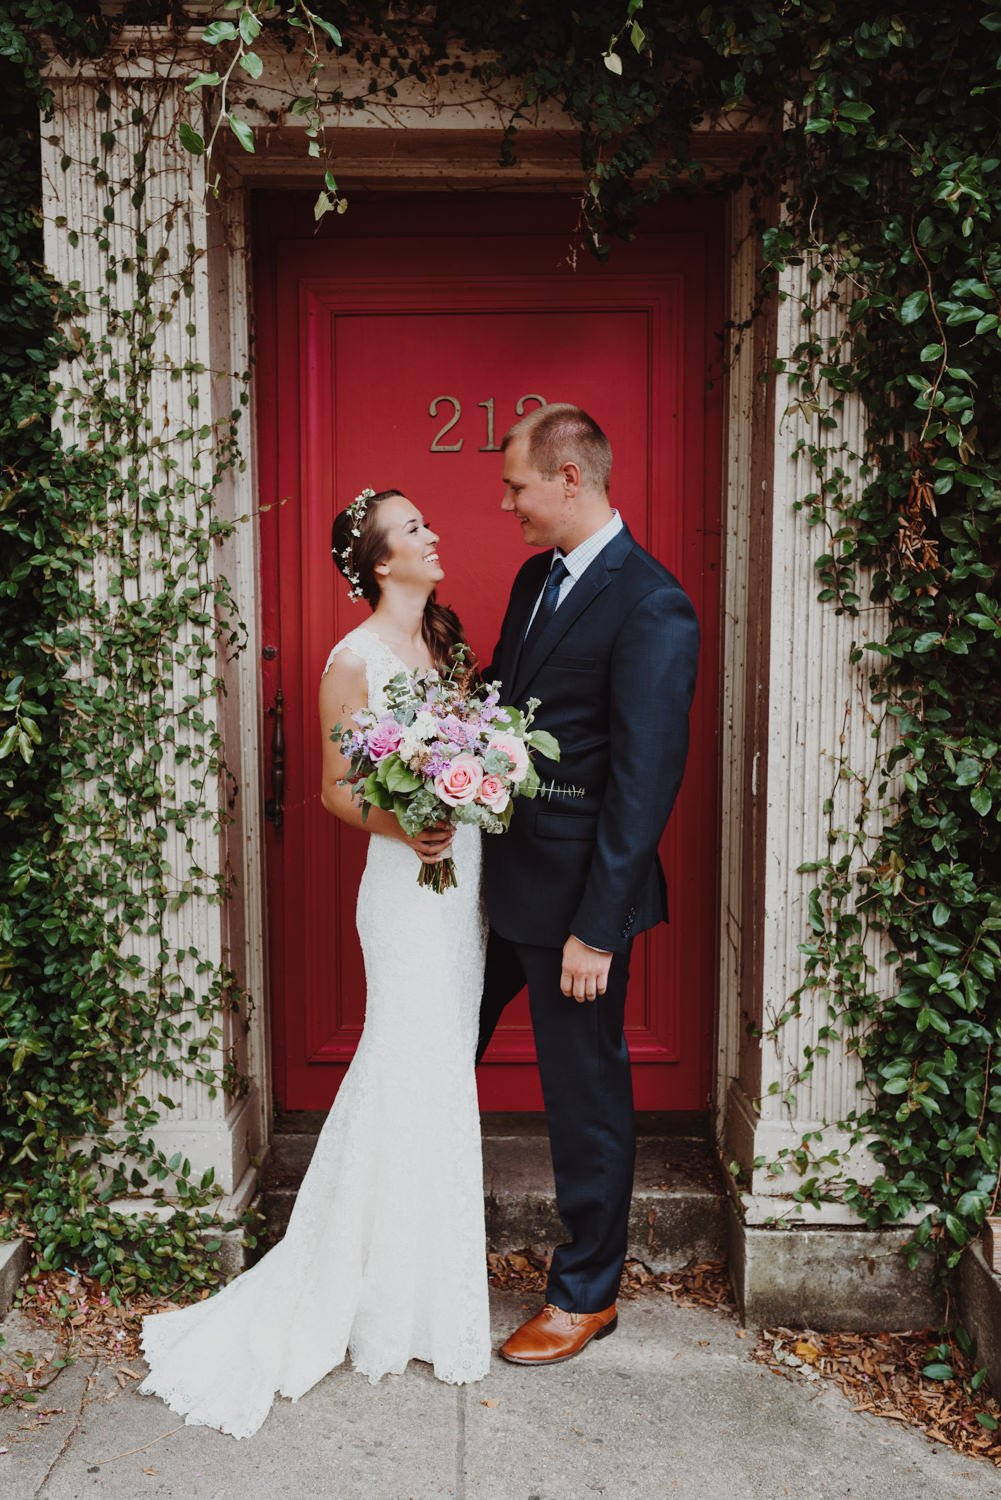 Boho bride and groom in front of red door